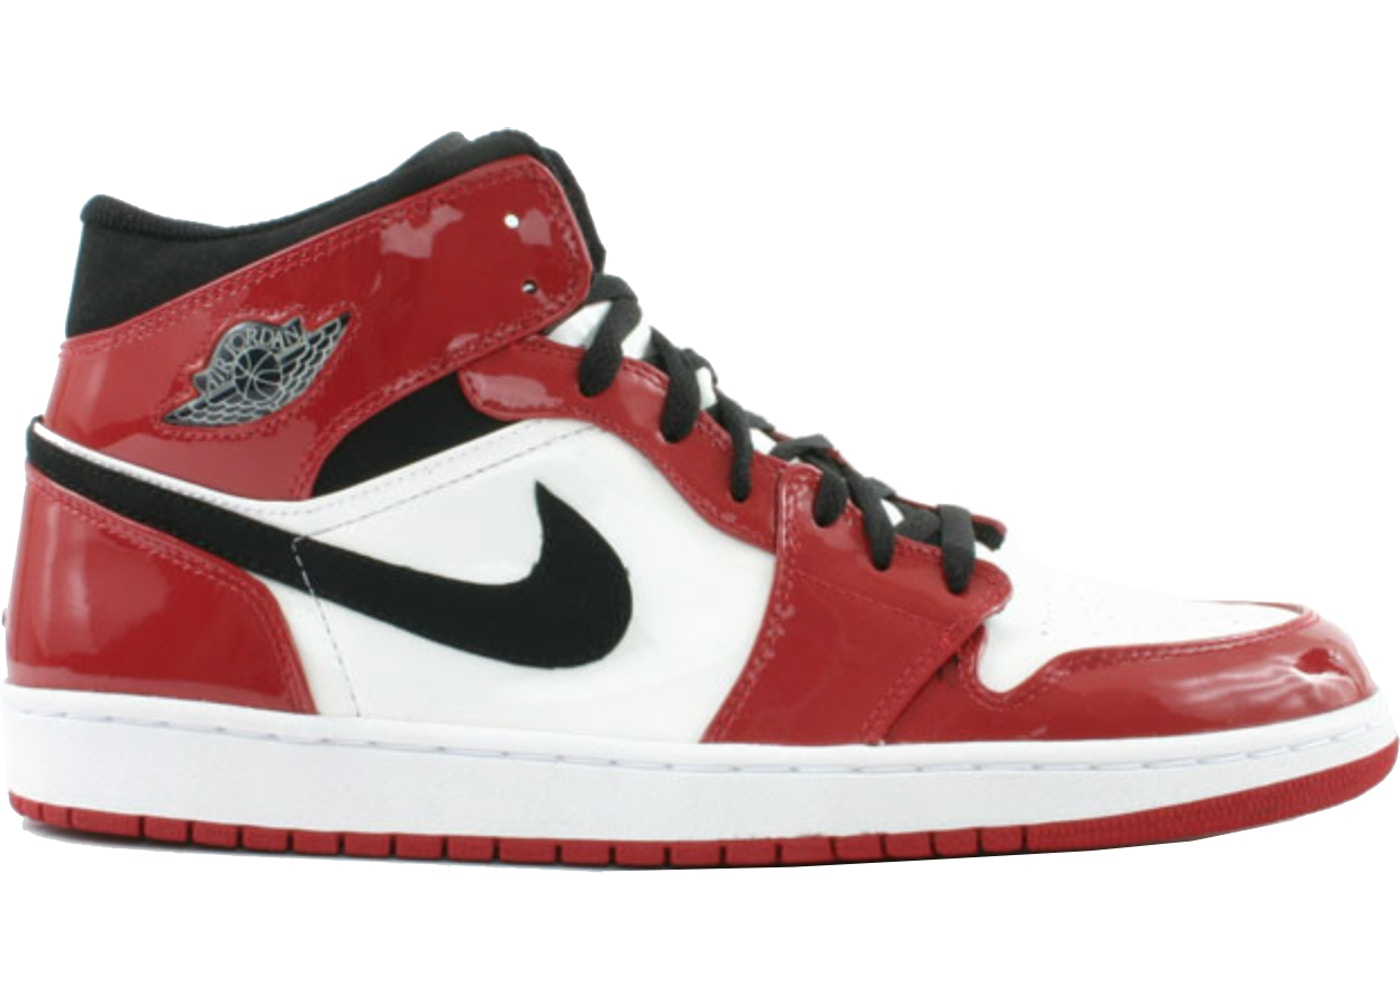 super popular 6dd23 96be4 Jordan 1 Retro Chicago Bulls Patent (2003)